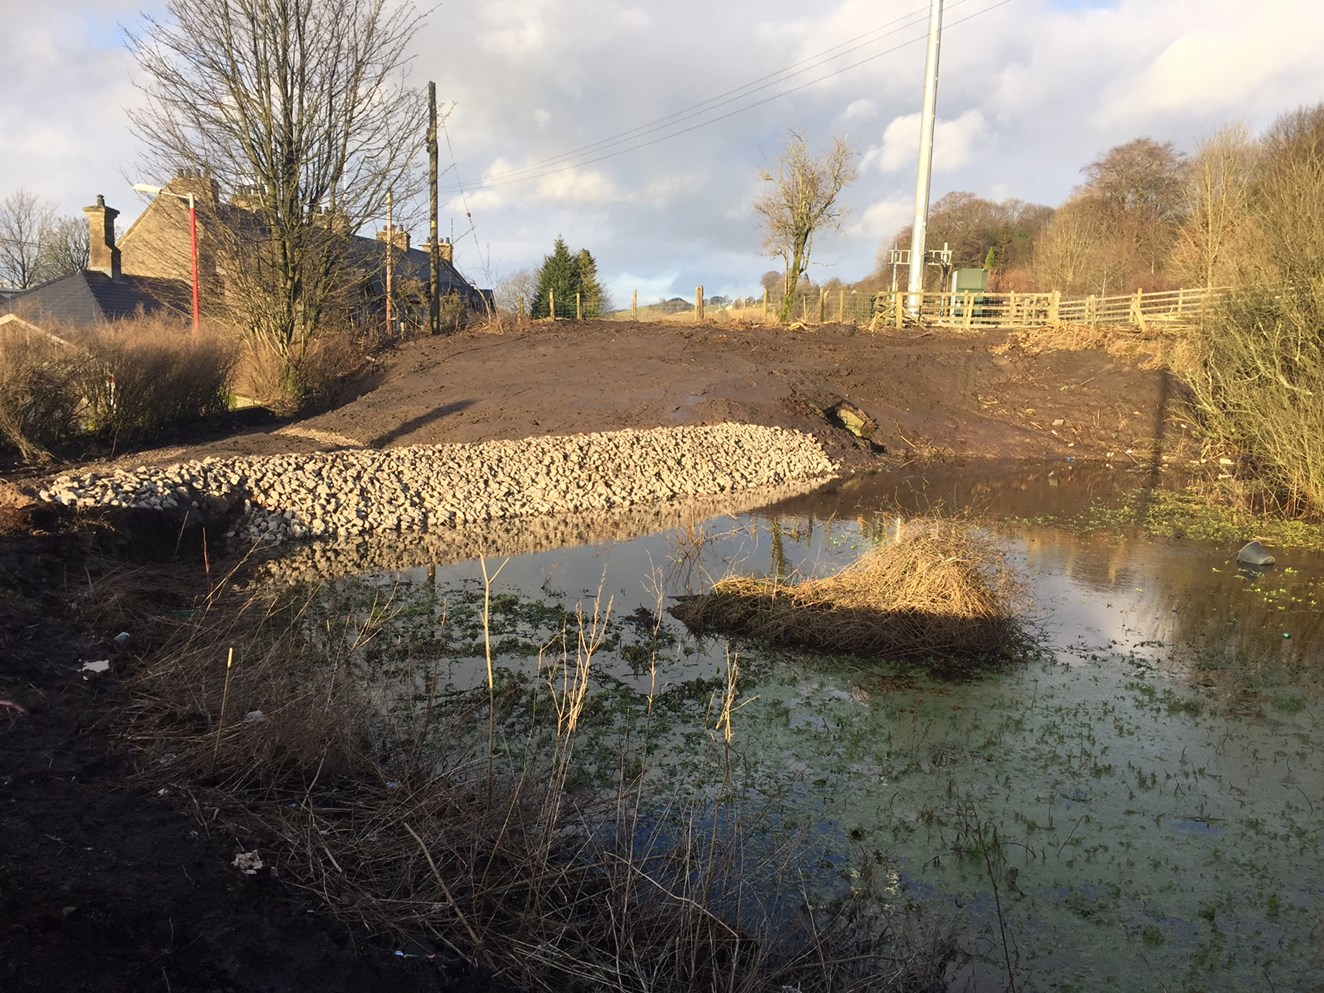 Pond drained